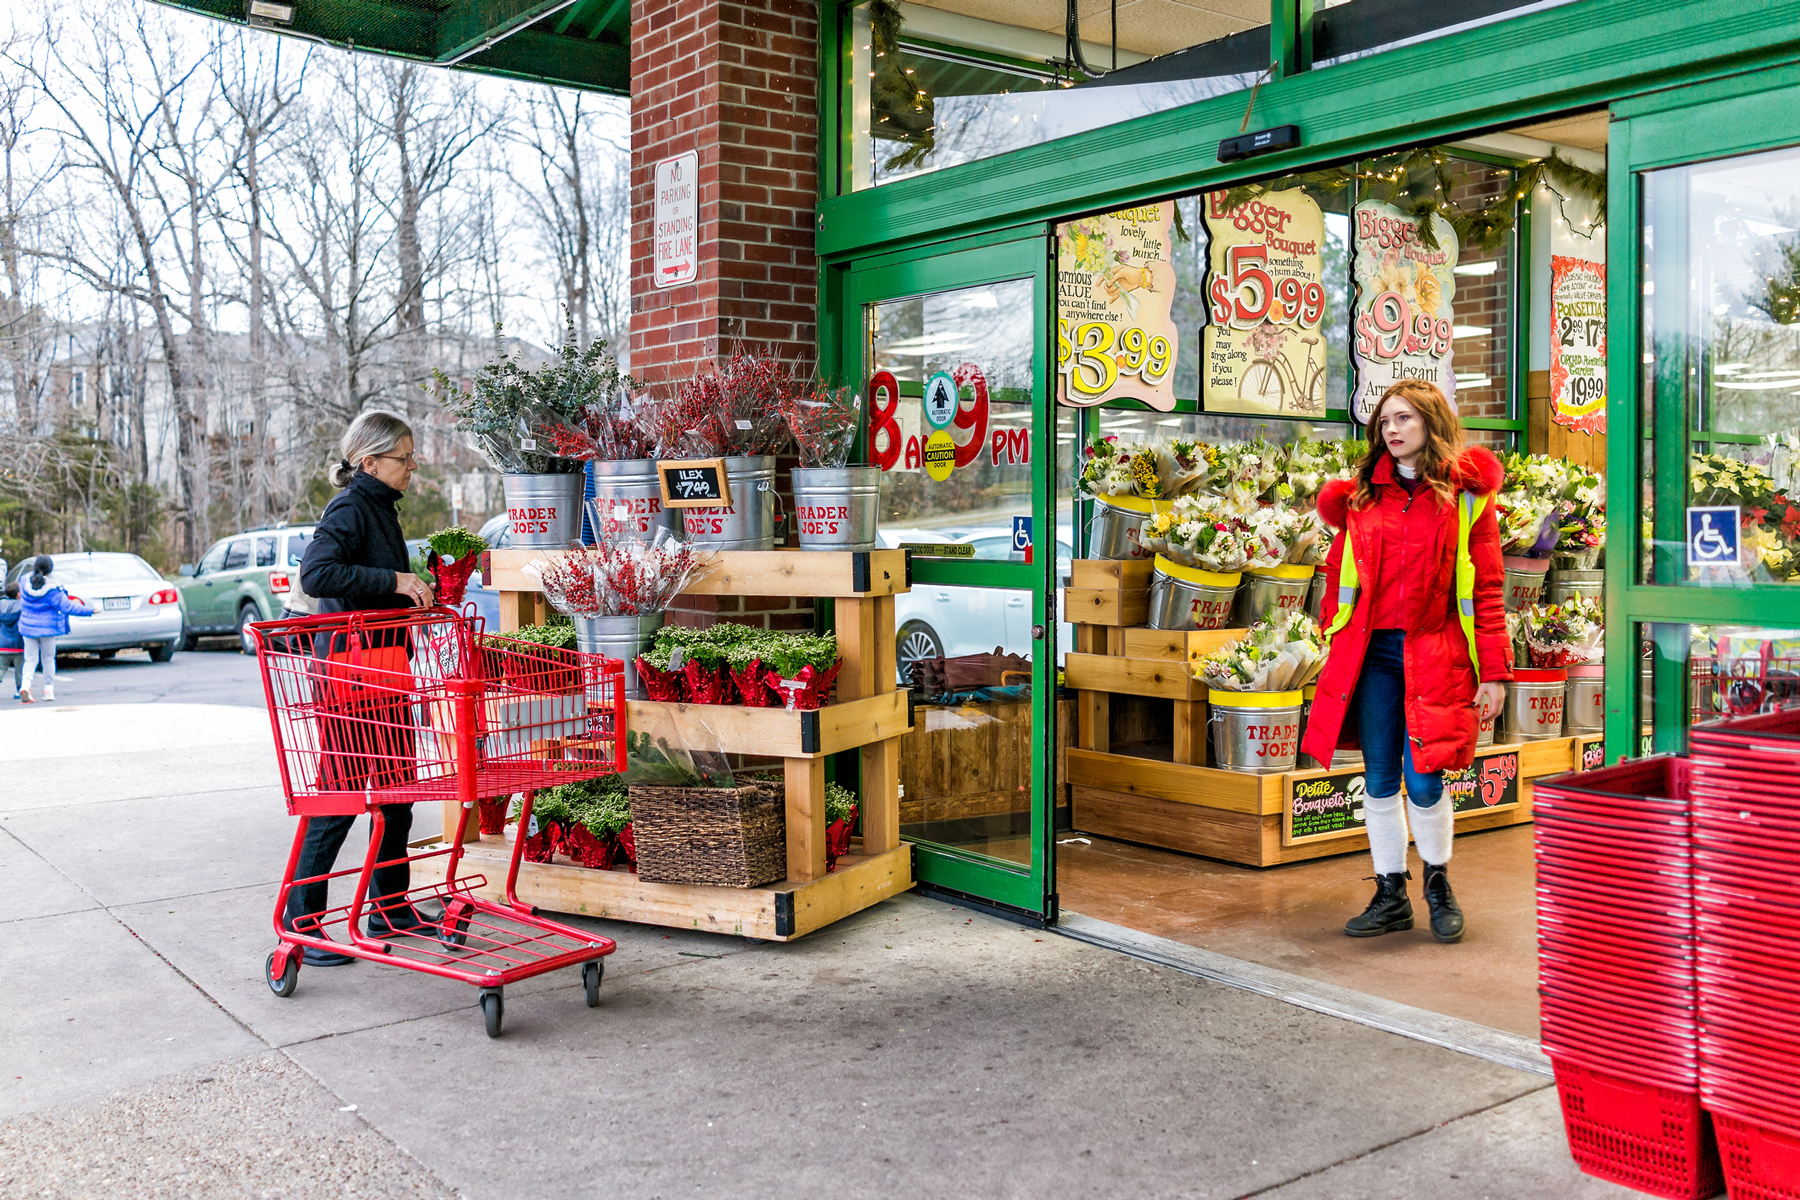 Trader Joe's employee in red clothes with customer, trolley shopping carts by store entrance doors outside women, winter flower pots, gardening plants in Virginia